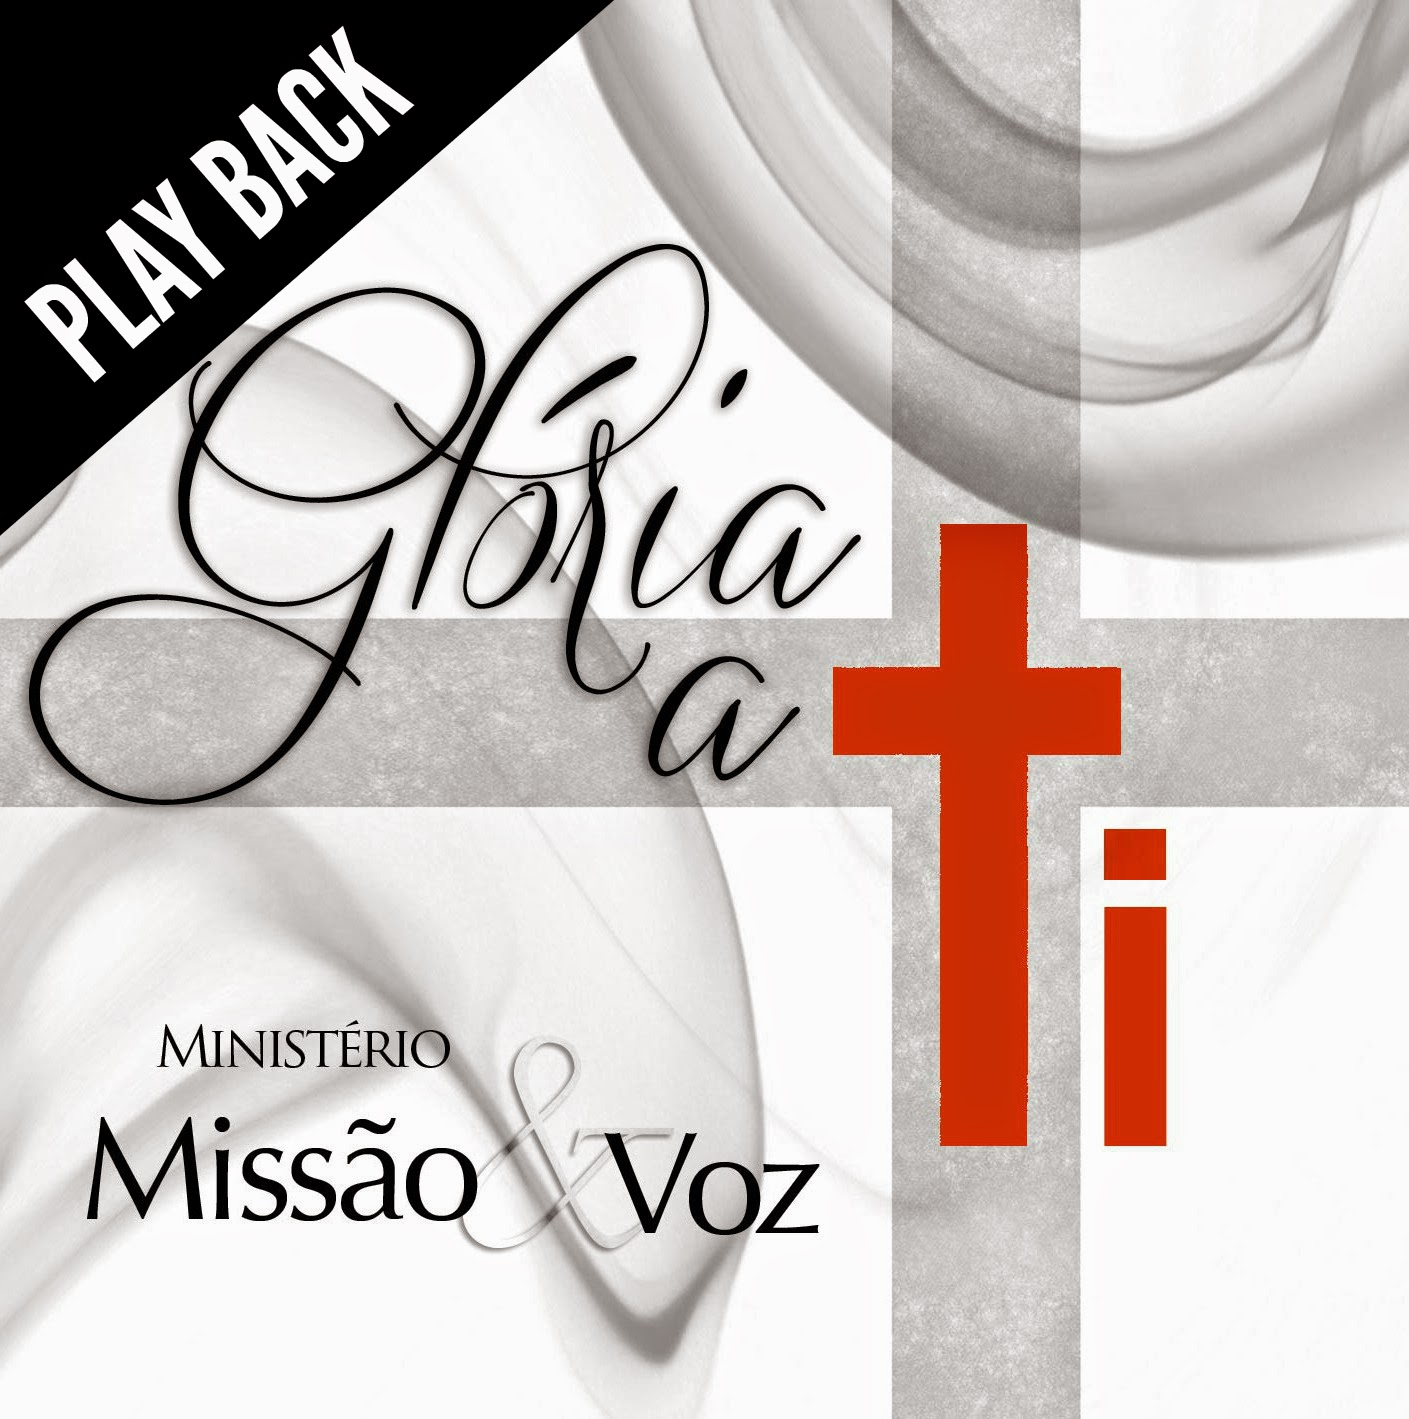 Play Backs Glória a Ti